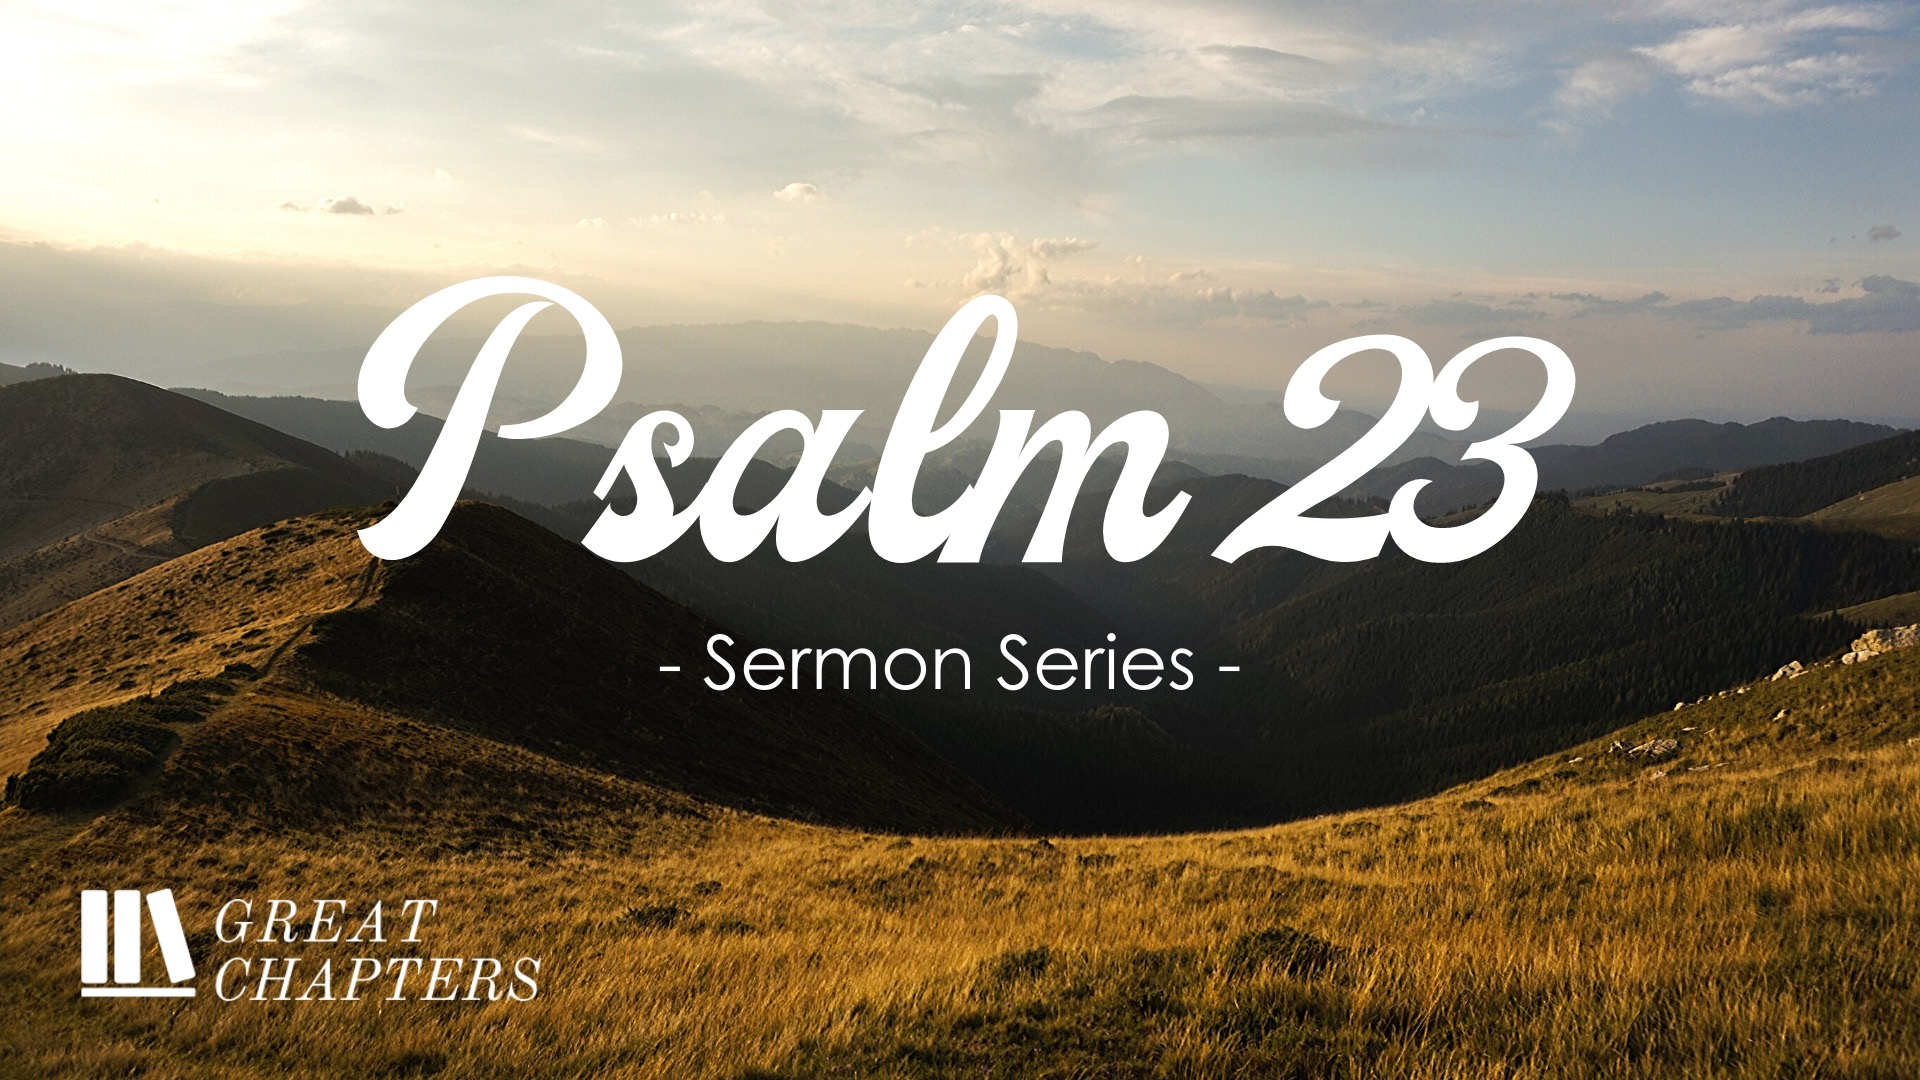 Great Chapters: Psalm 23